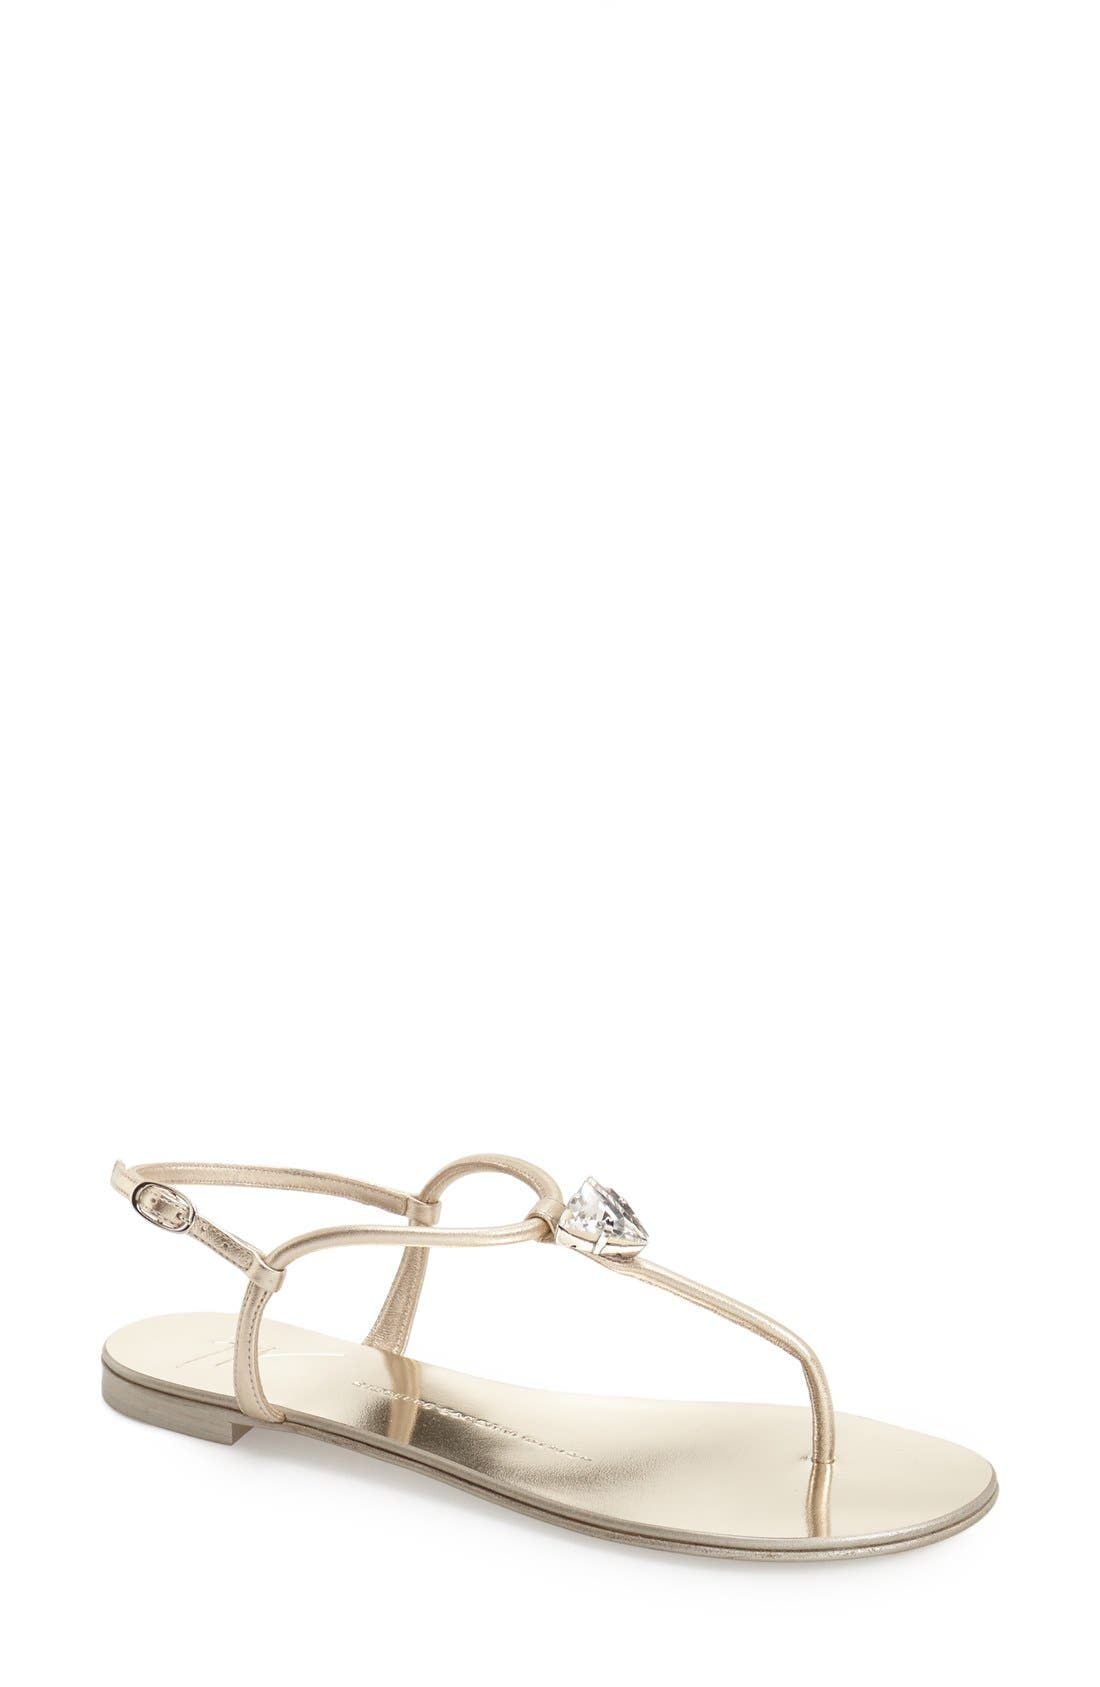 Alternate Image 1 Selected - Giuseppe Zanotti Nuvorock Sandal (Women) (Nordstrom Exclusive)